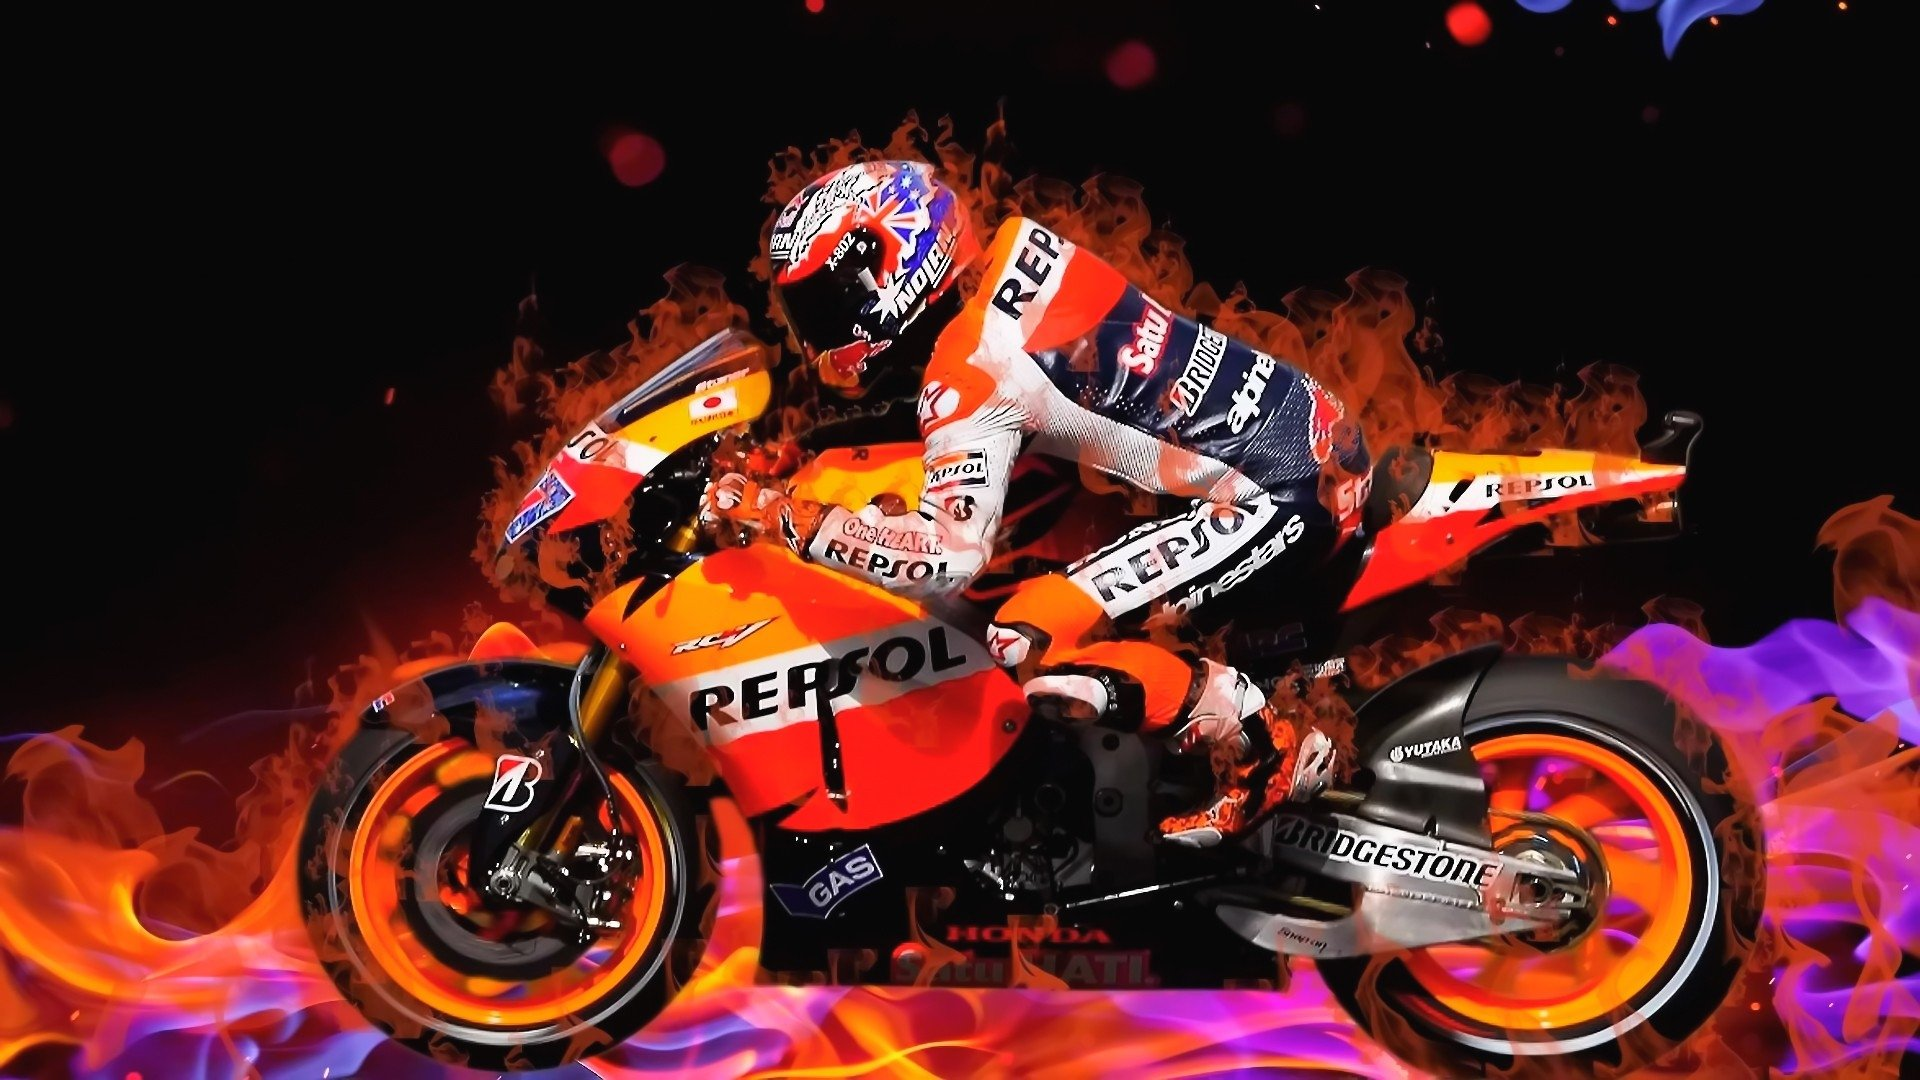 Motorcycle Racing Hd Wallpaper Background Image